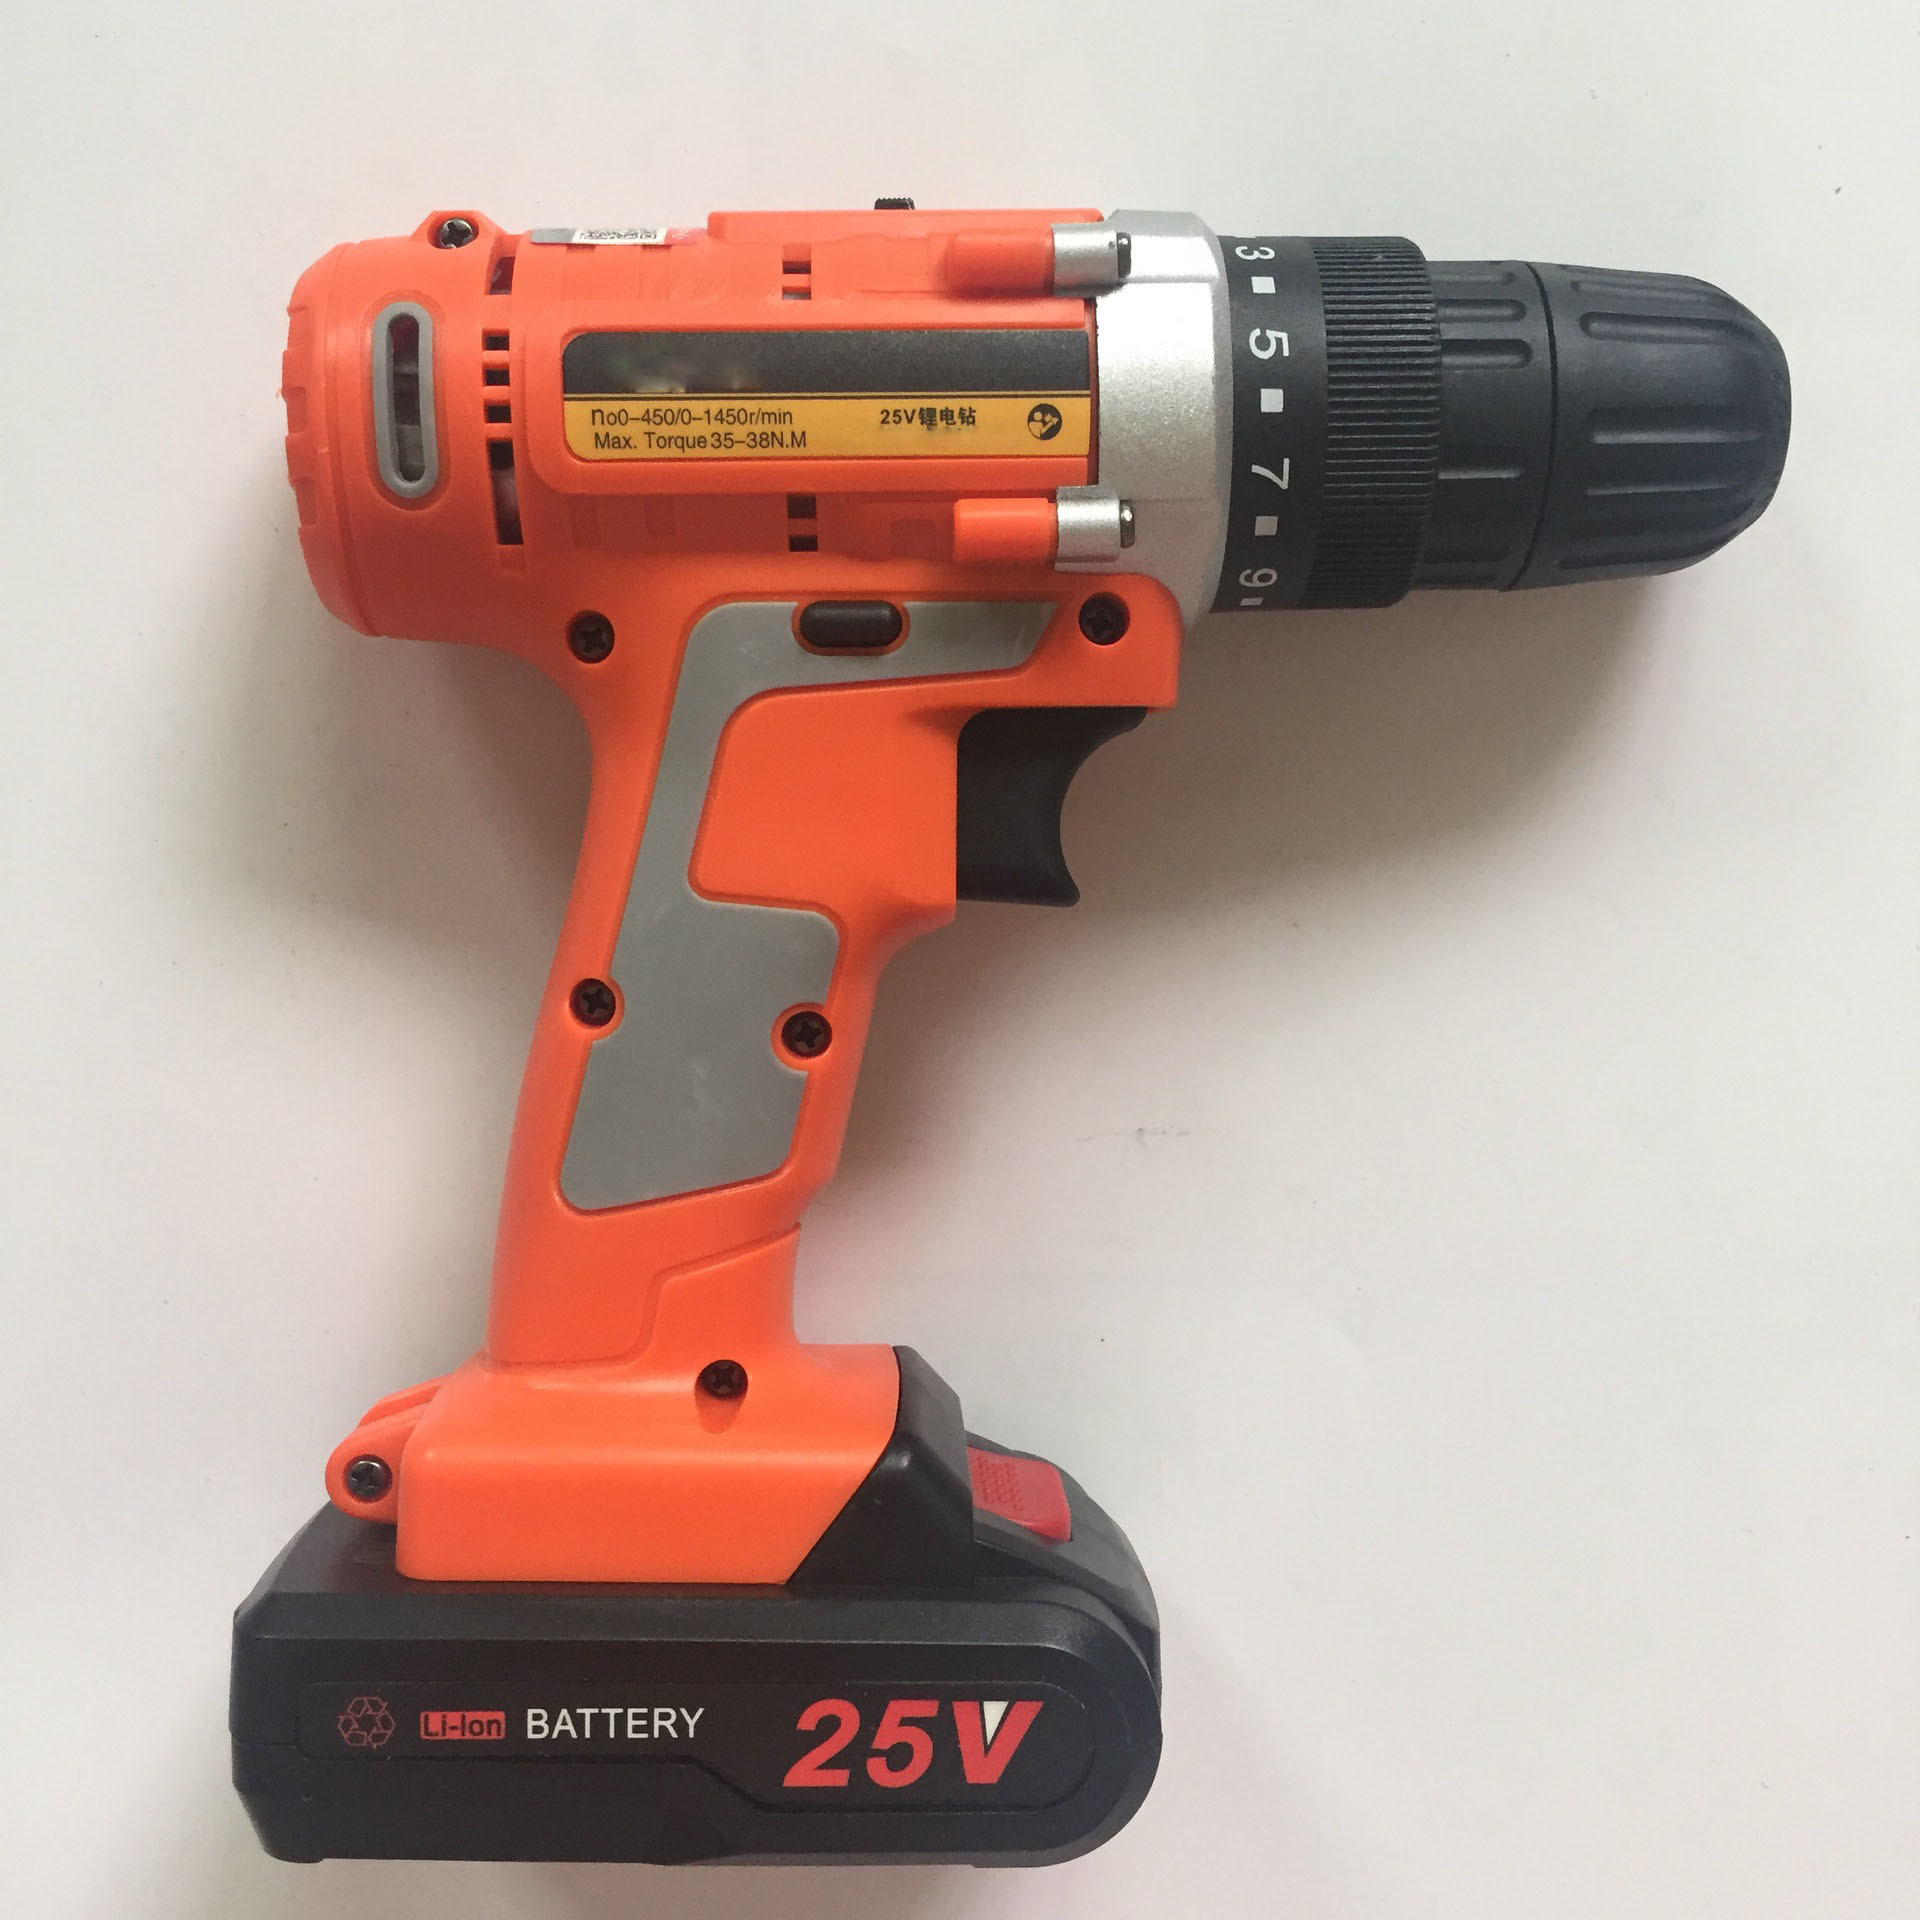 2018 electric power craft cordless drill battery for Who makes power craft tools